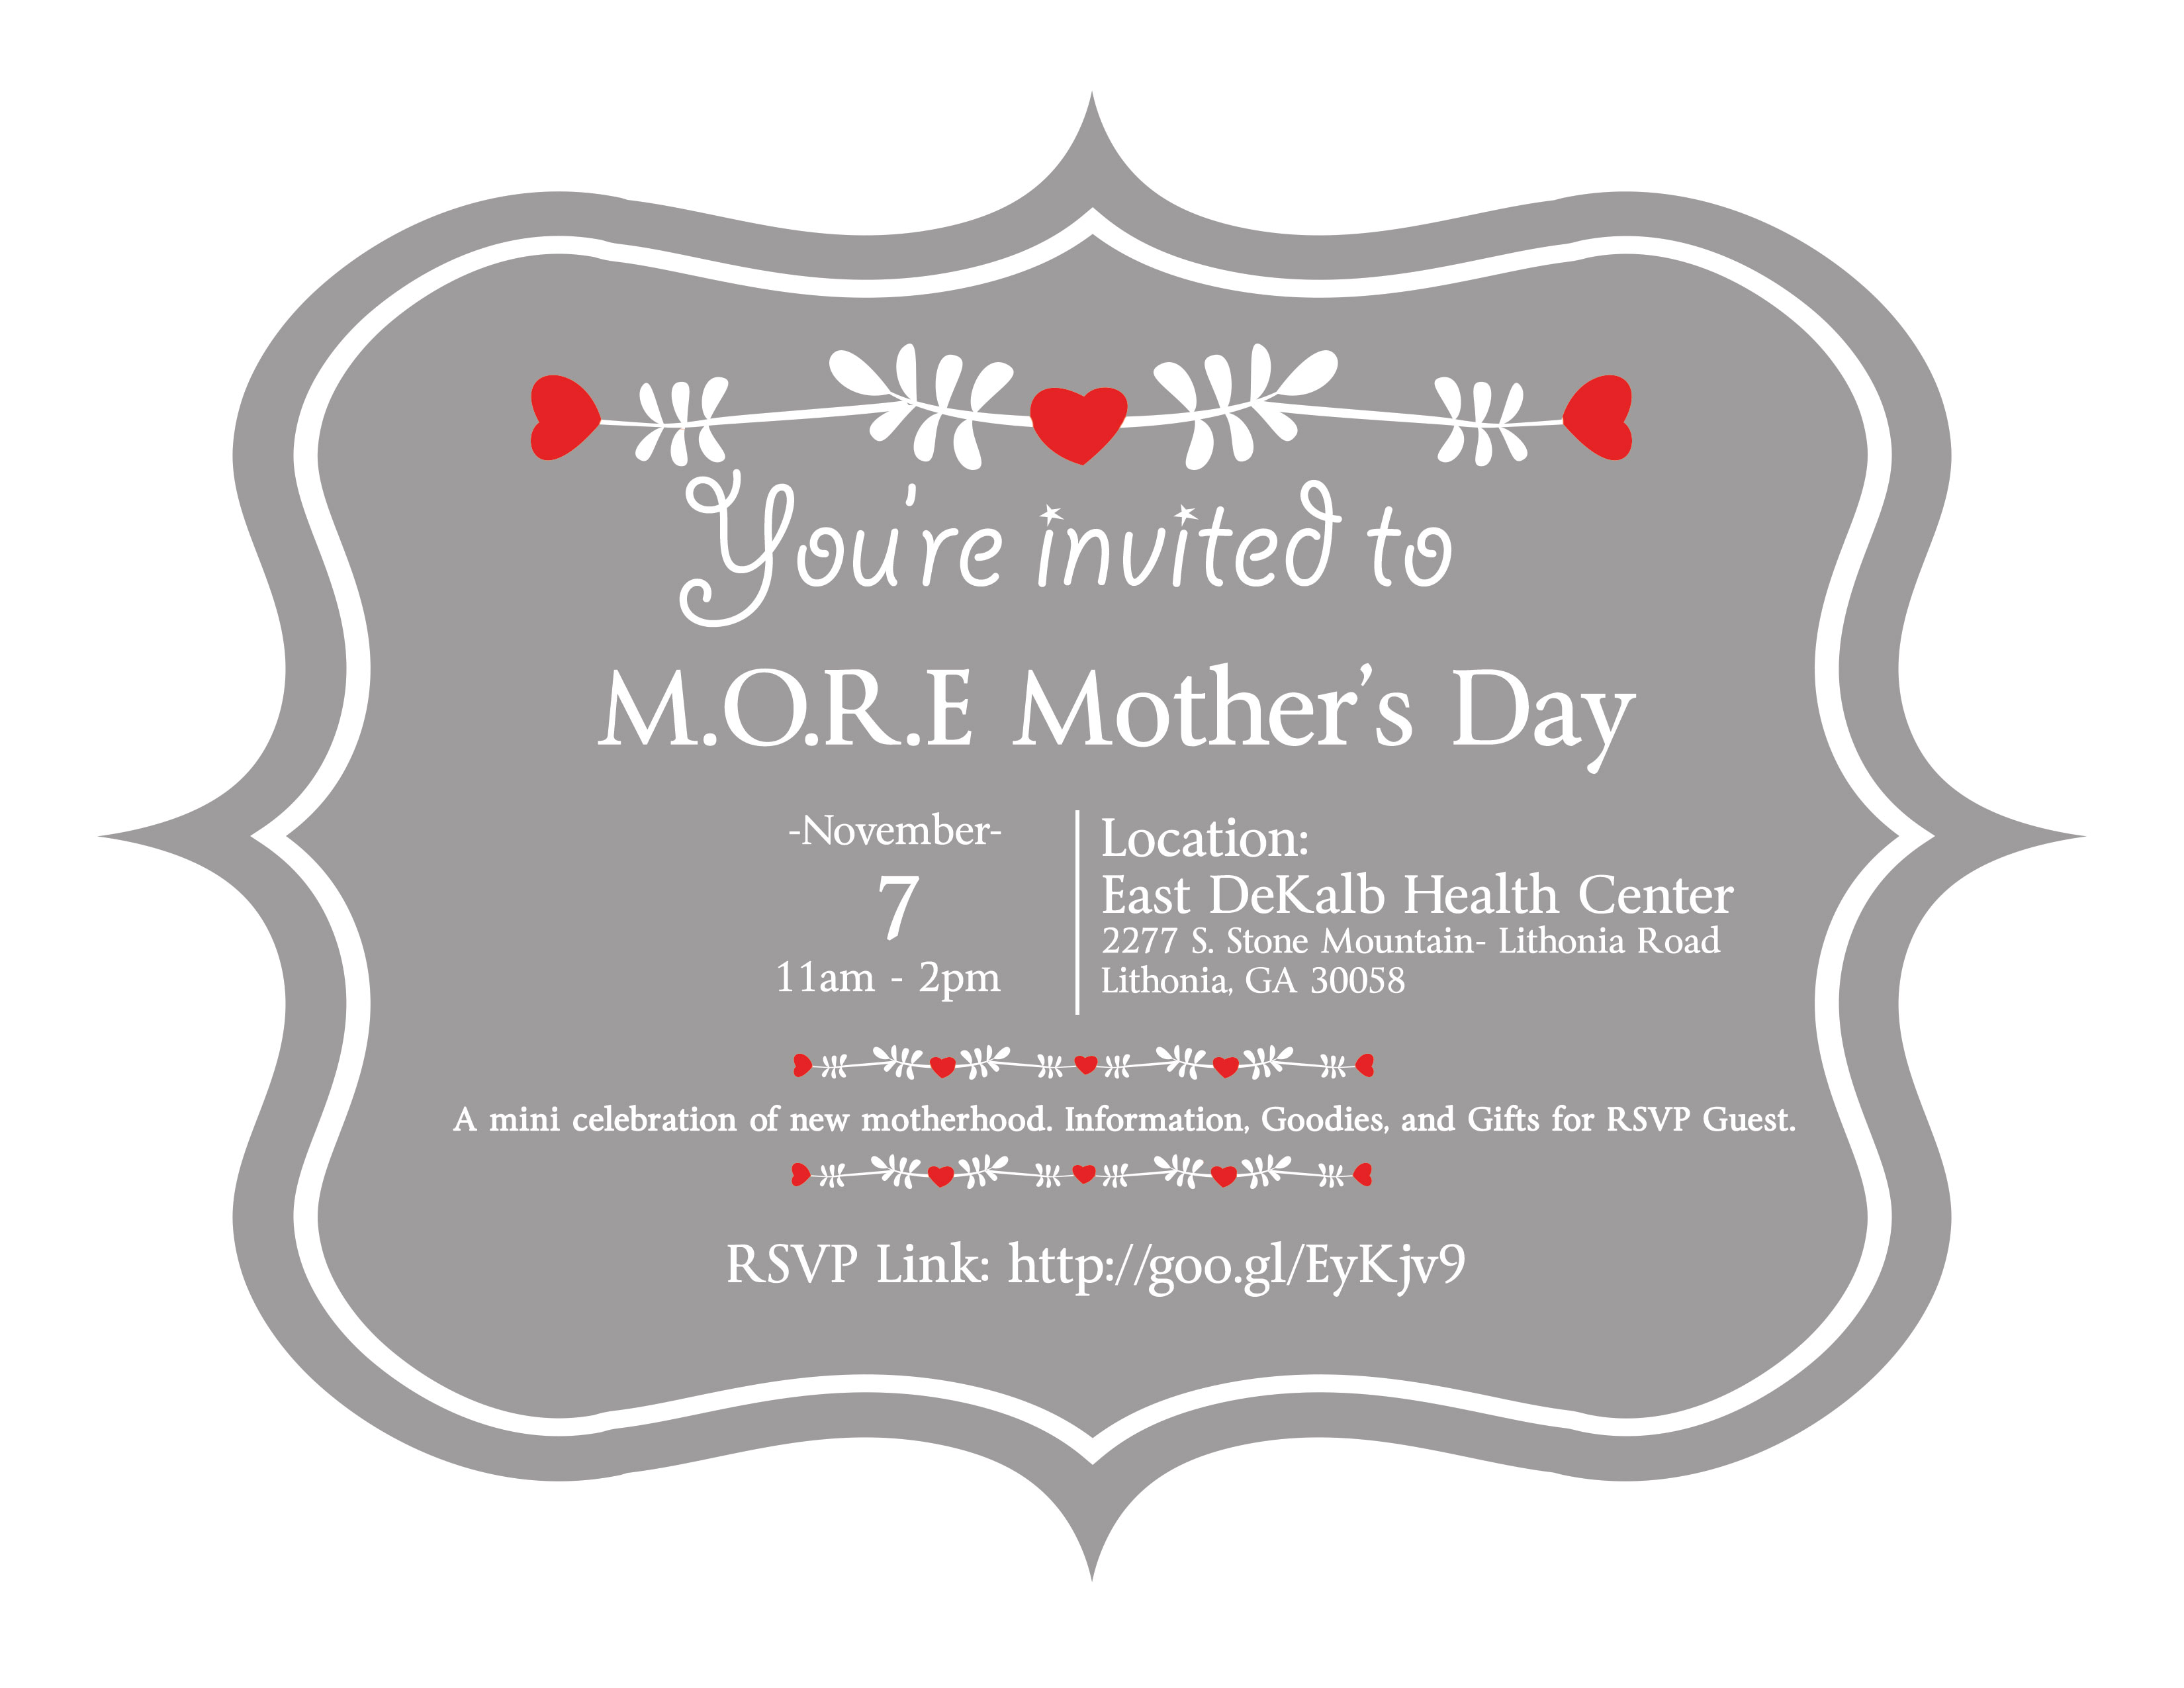 M.O.R.E. Mother's Day